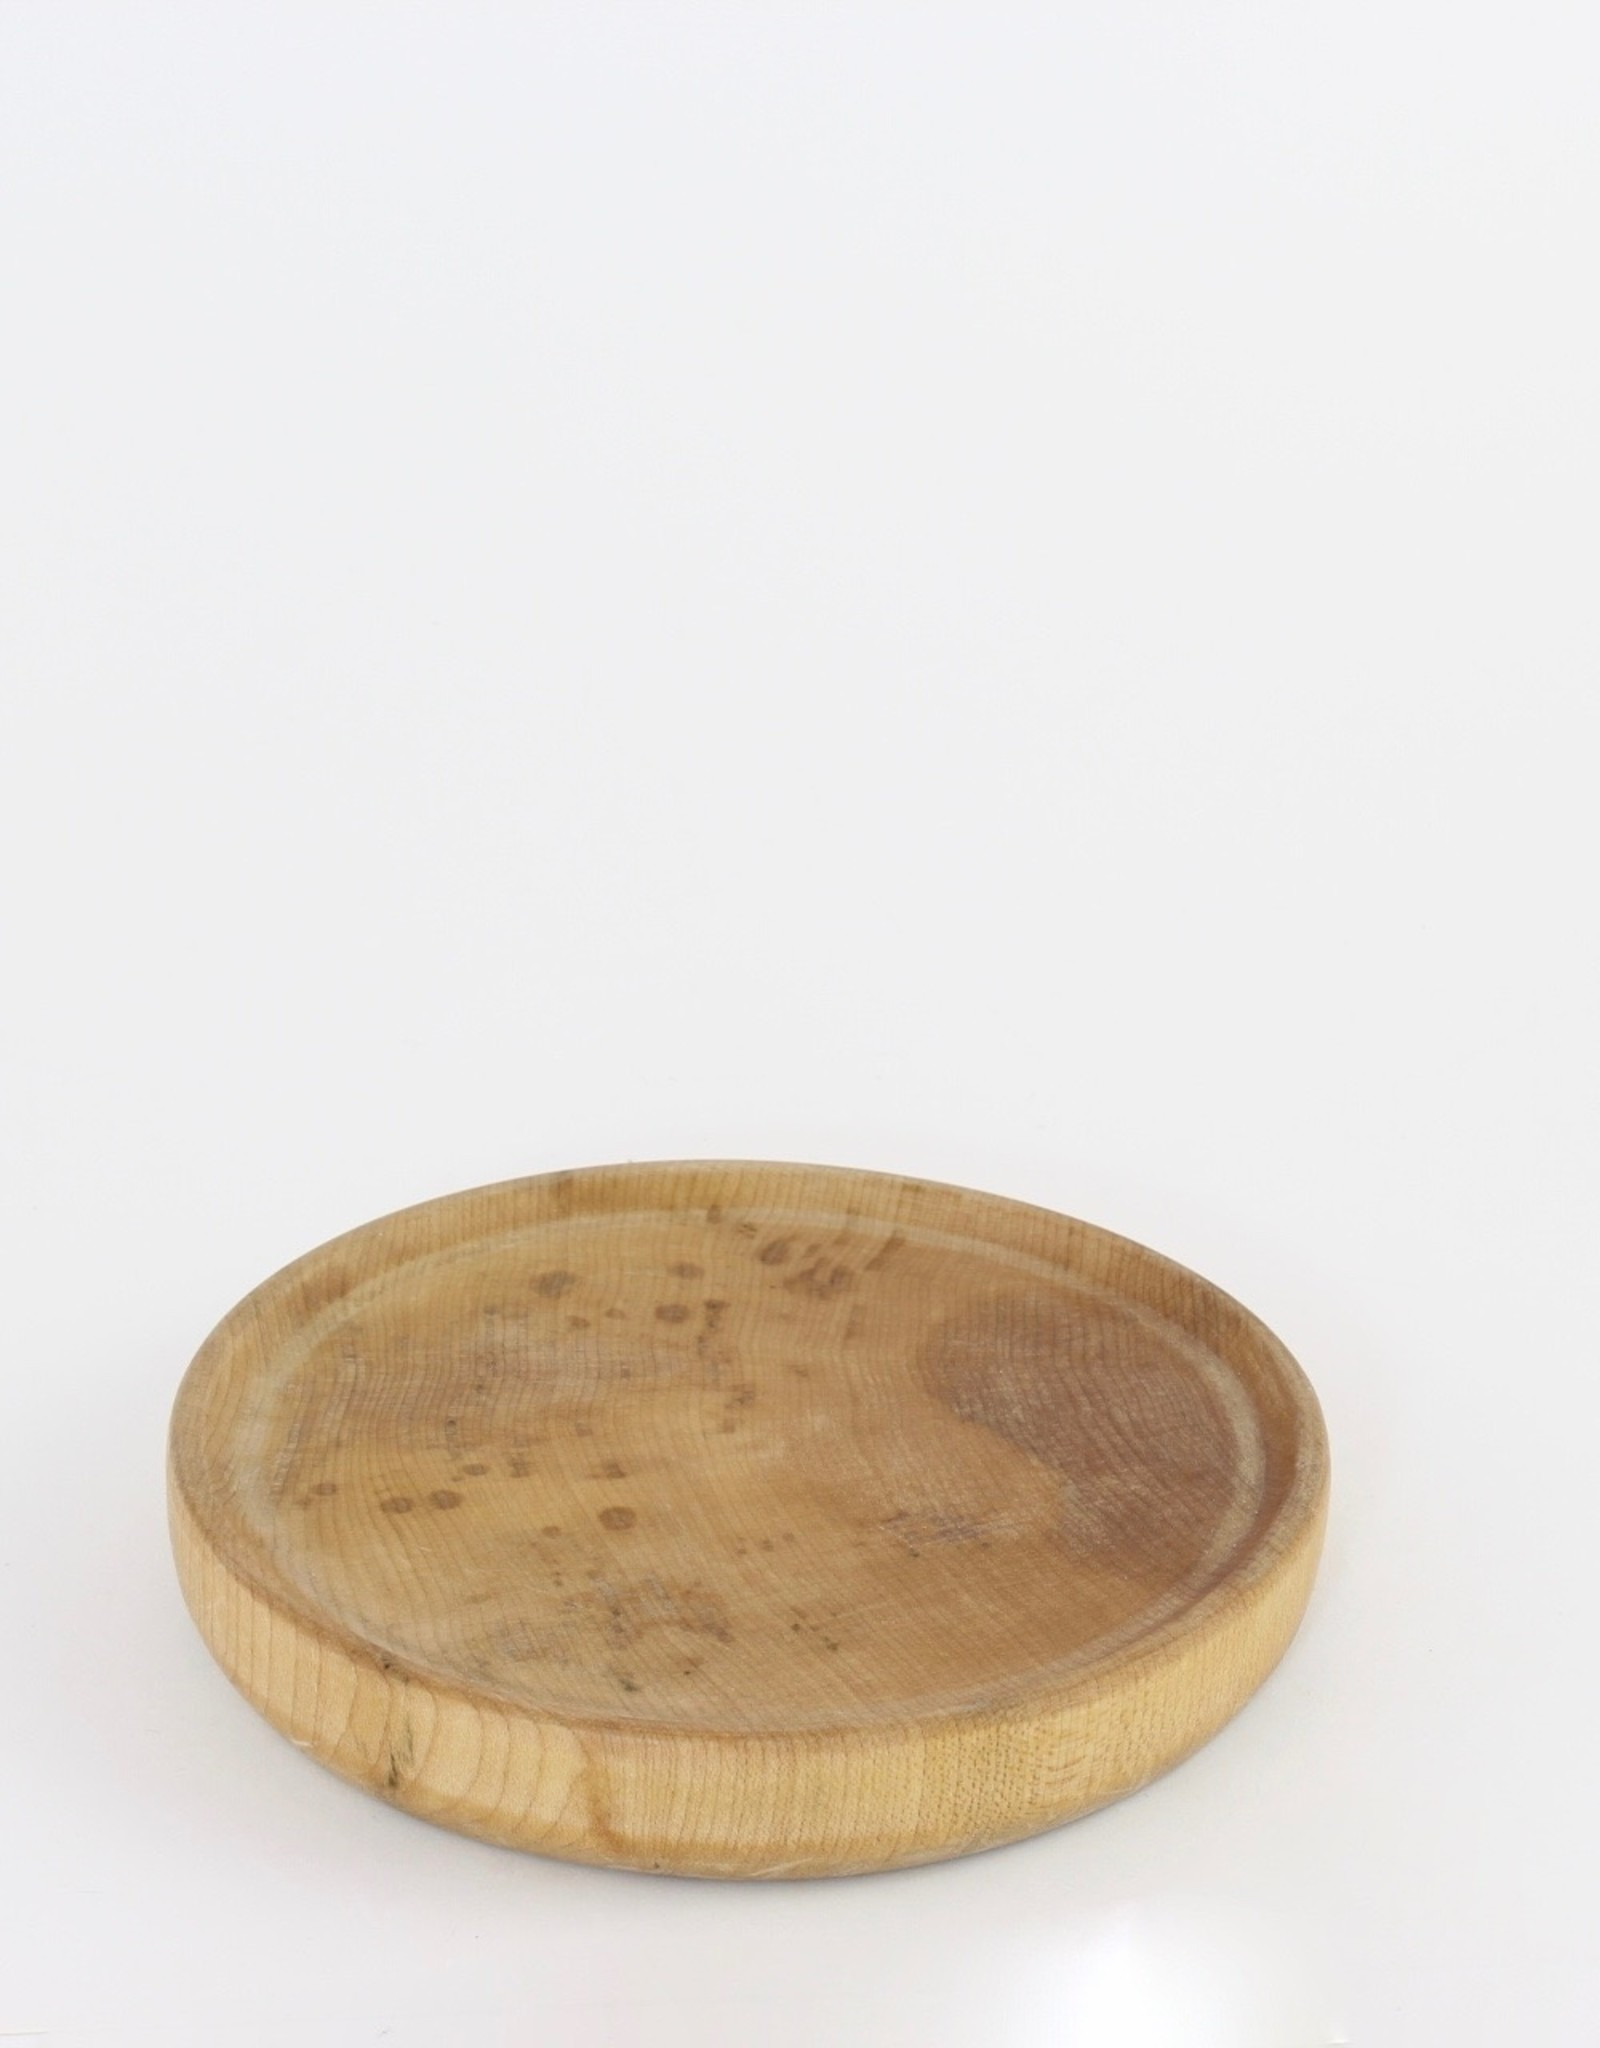 phil jones Maple Serving Dish by The Bowl Guy